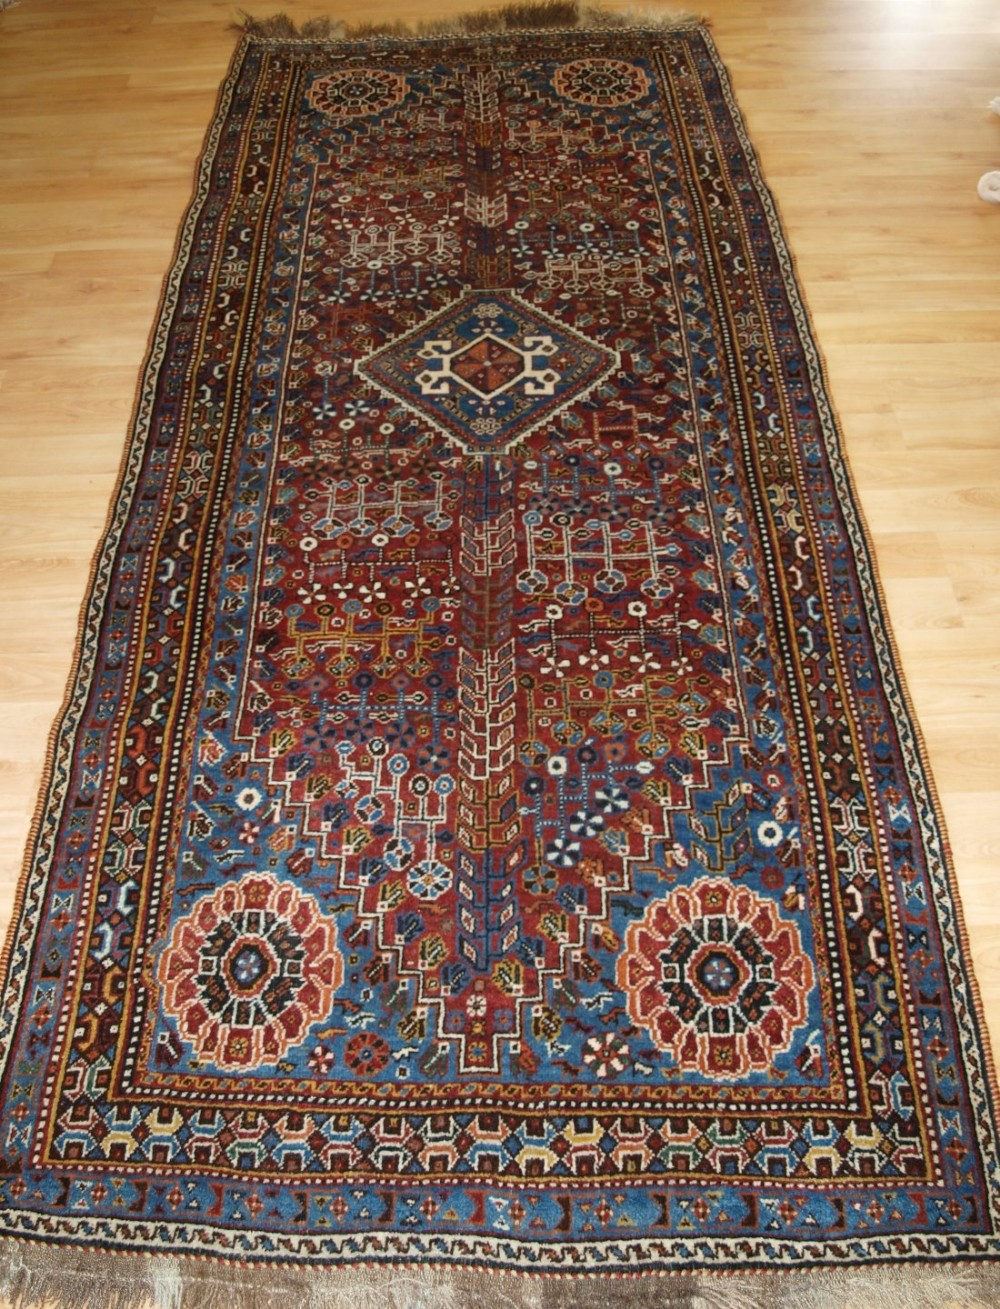 antique persian qashqai runner long rug tribal design superb condition circa 190020